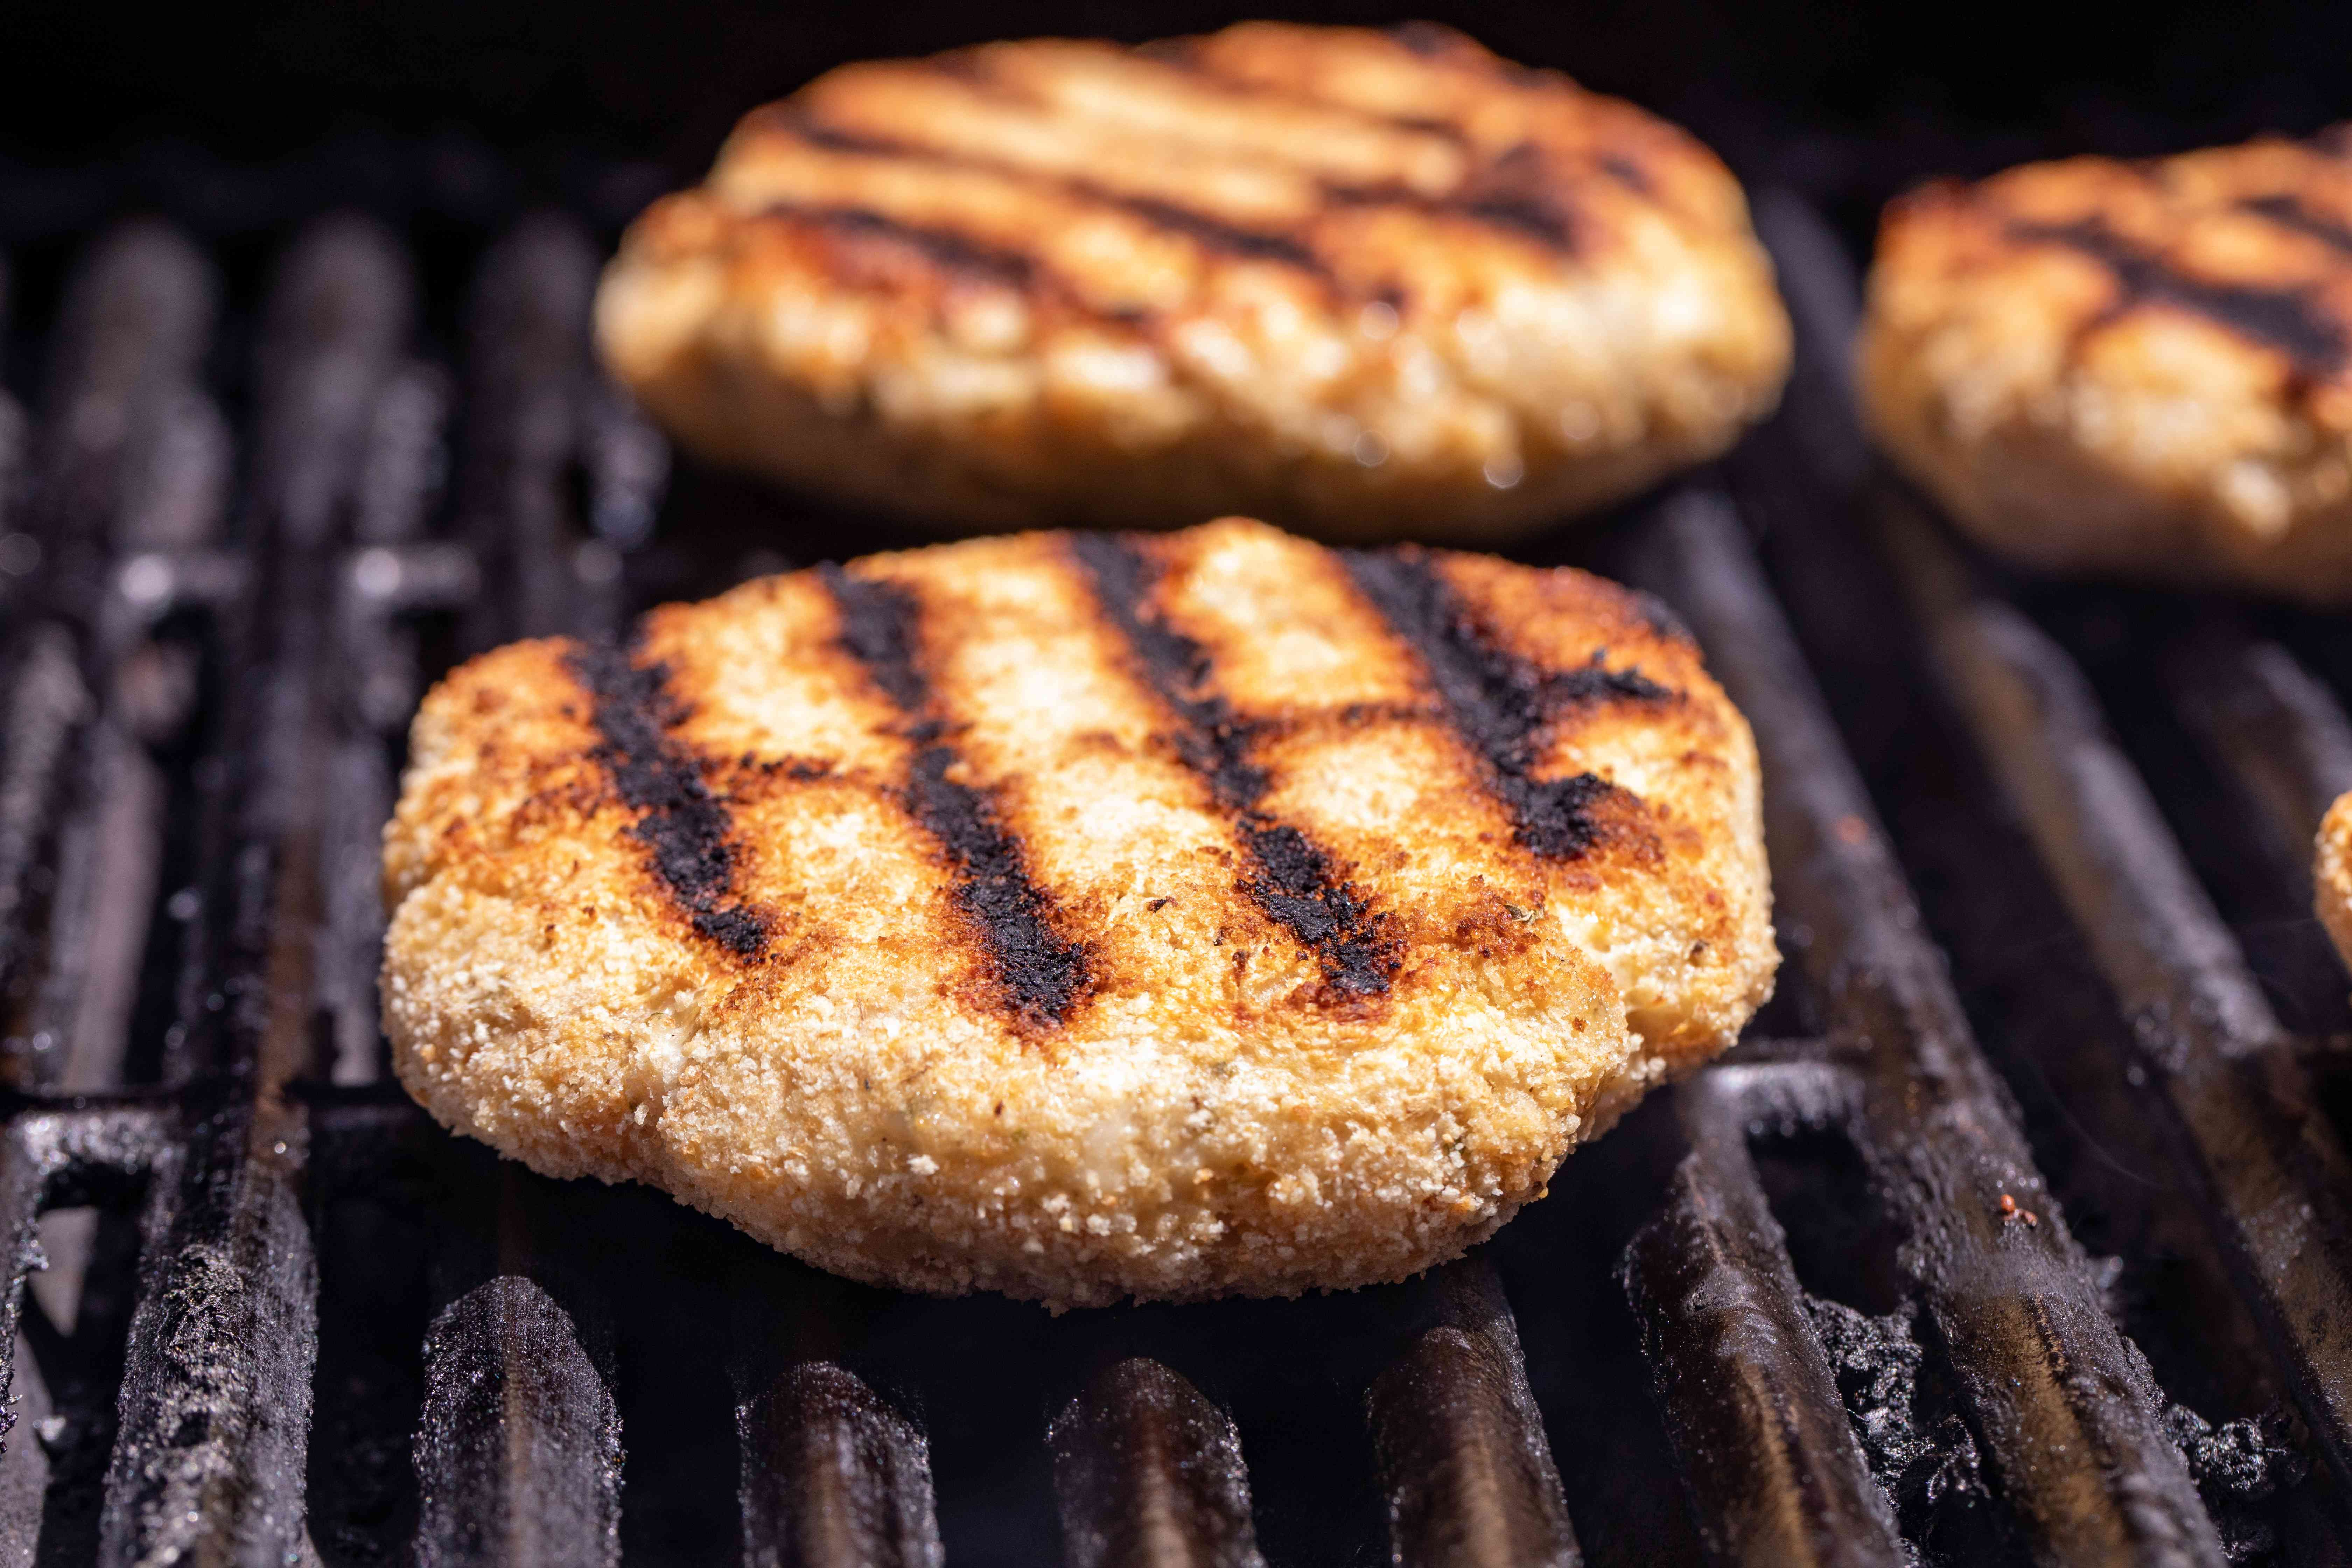 Grilling chicken and herb burgers.